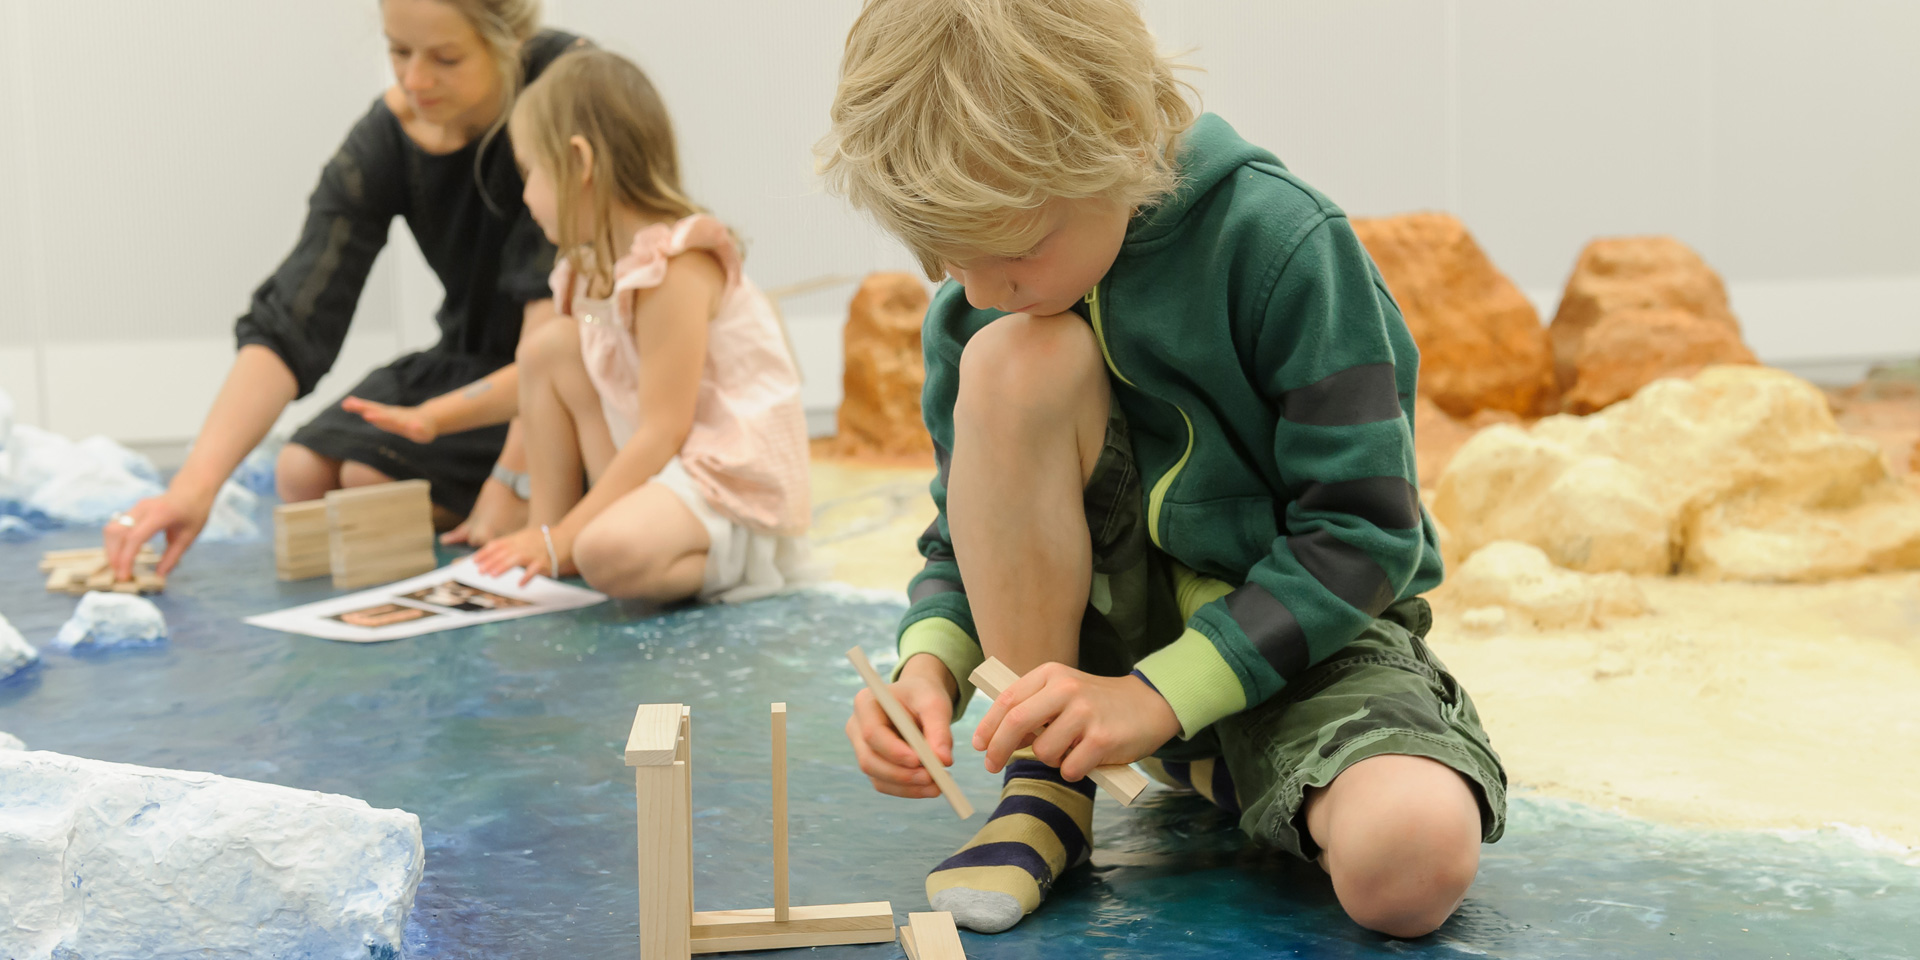 Families building wooden block structures